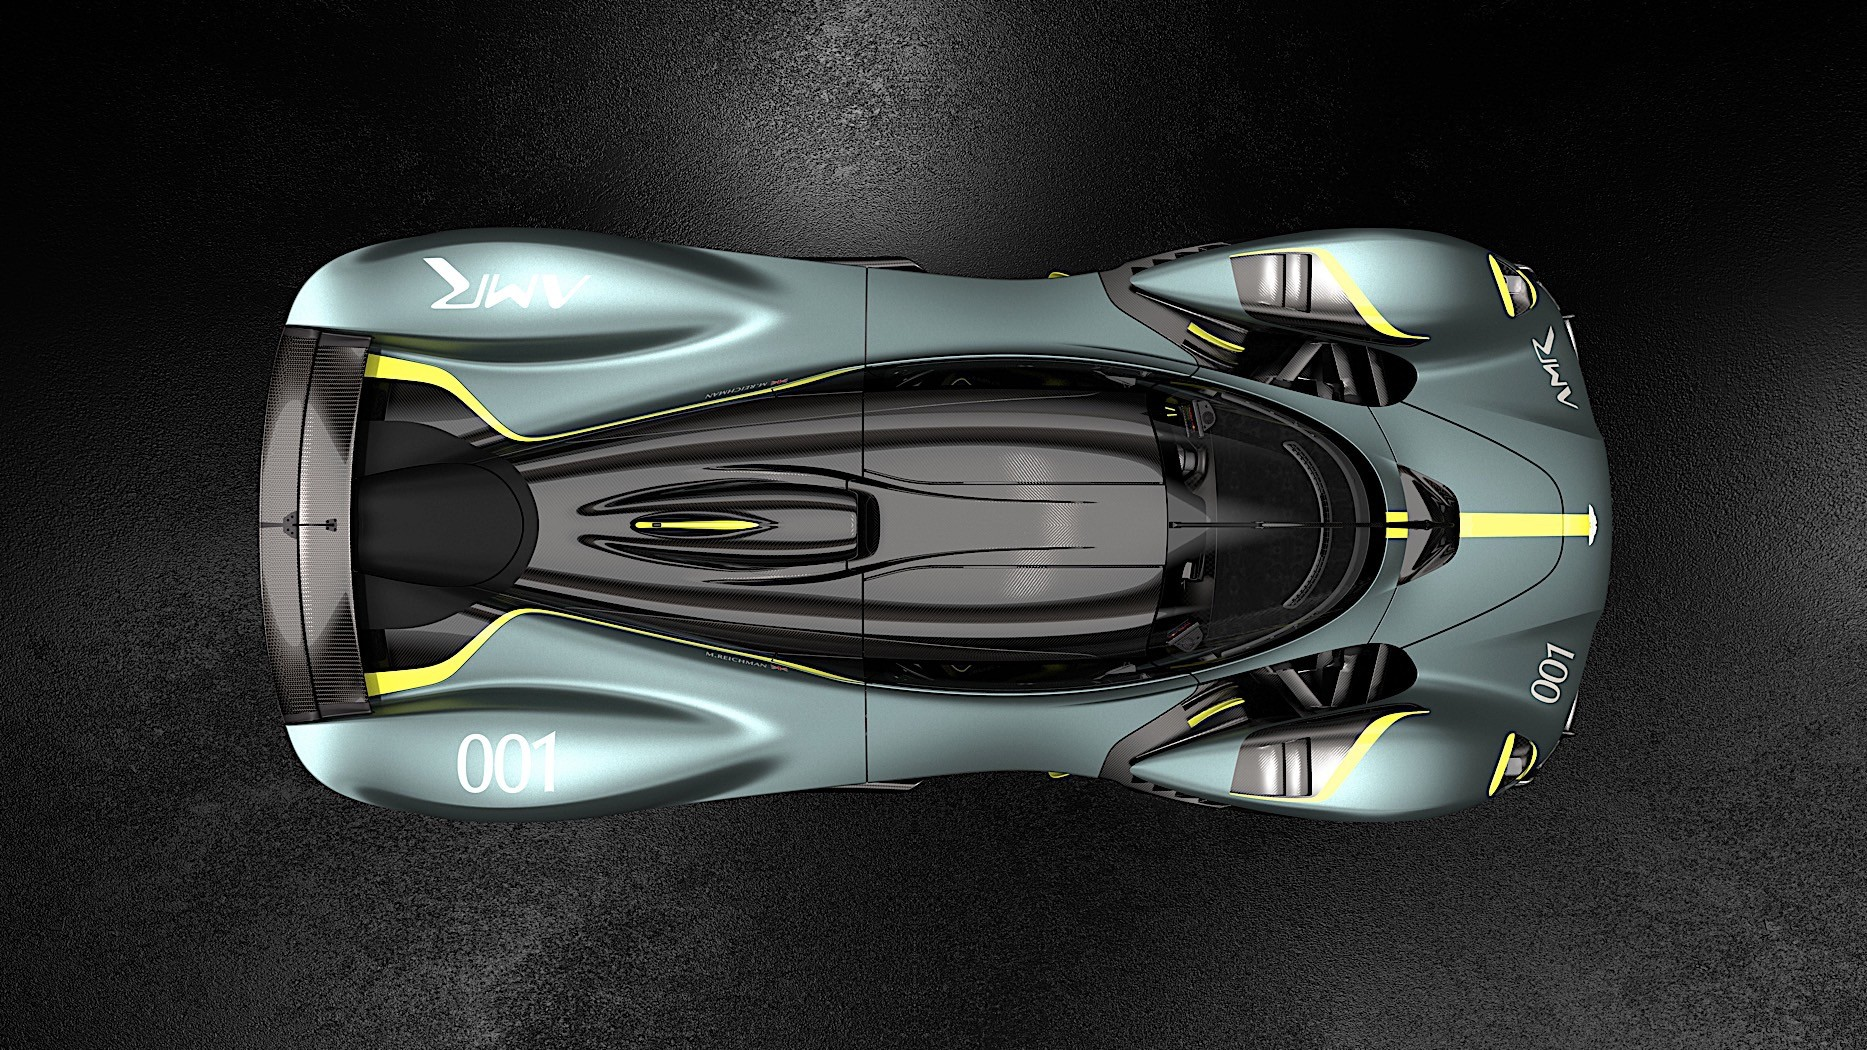 Aston Martin Eyeing A Blistering Nurburgring Lap Time With The Valkyrie Autoevolution